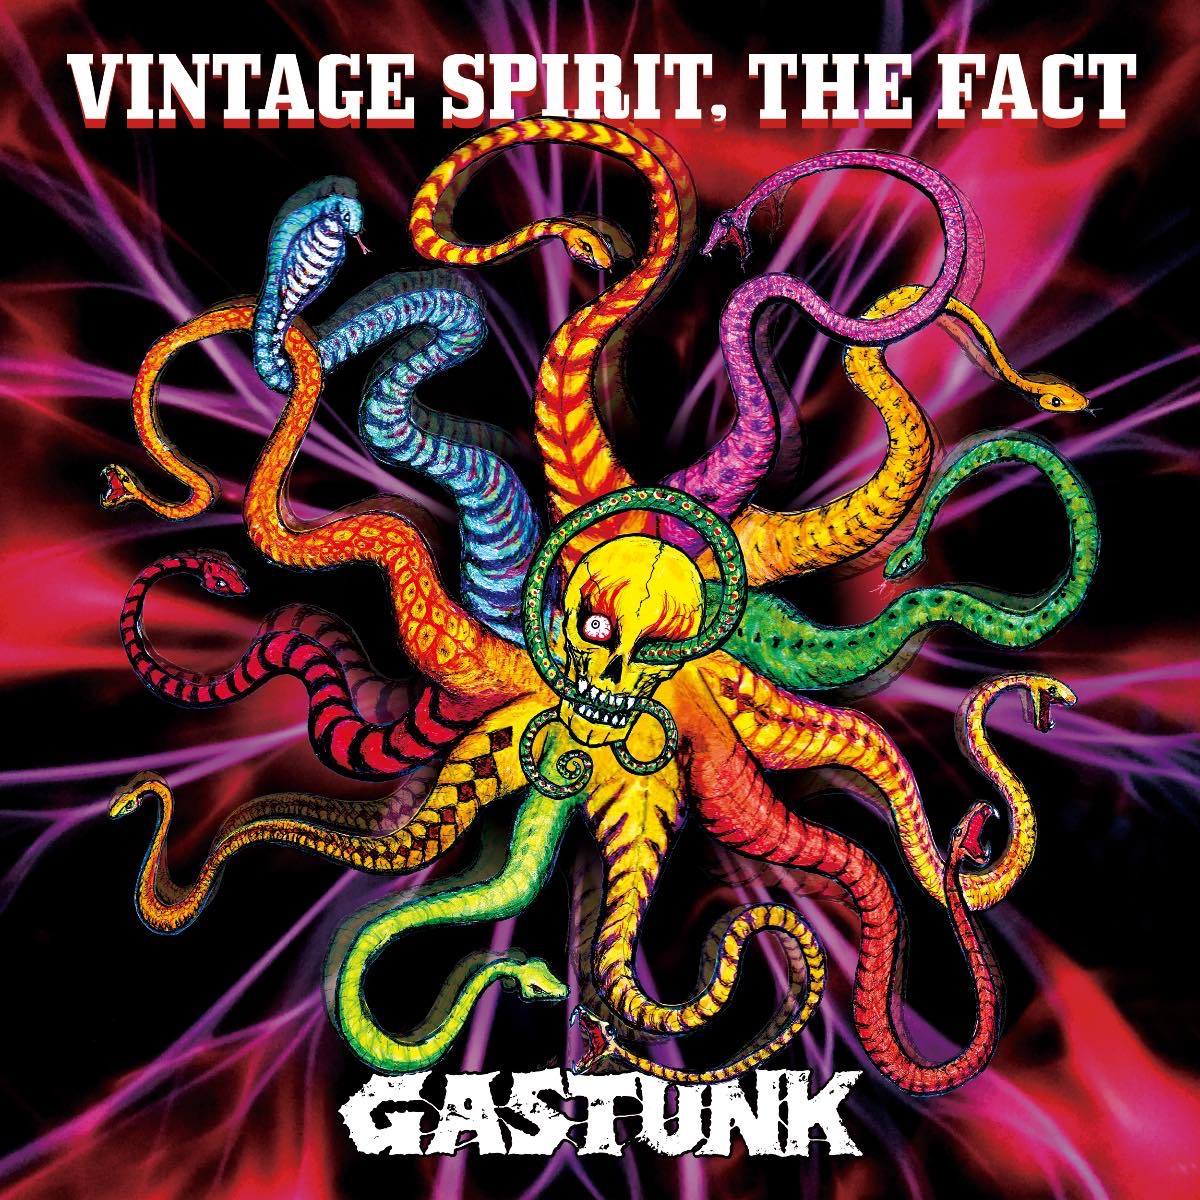 VINTAGE SPIRIT, THE FACT